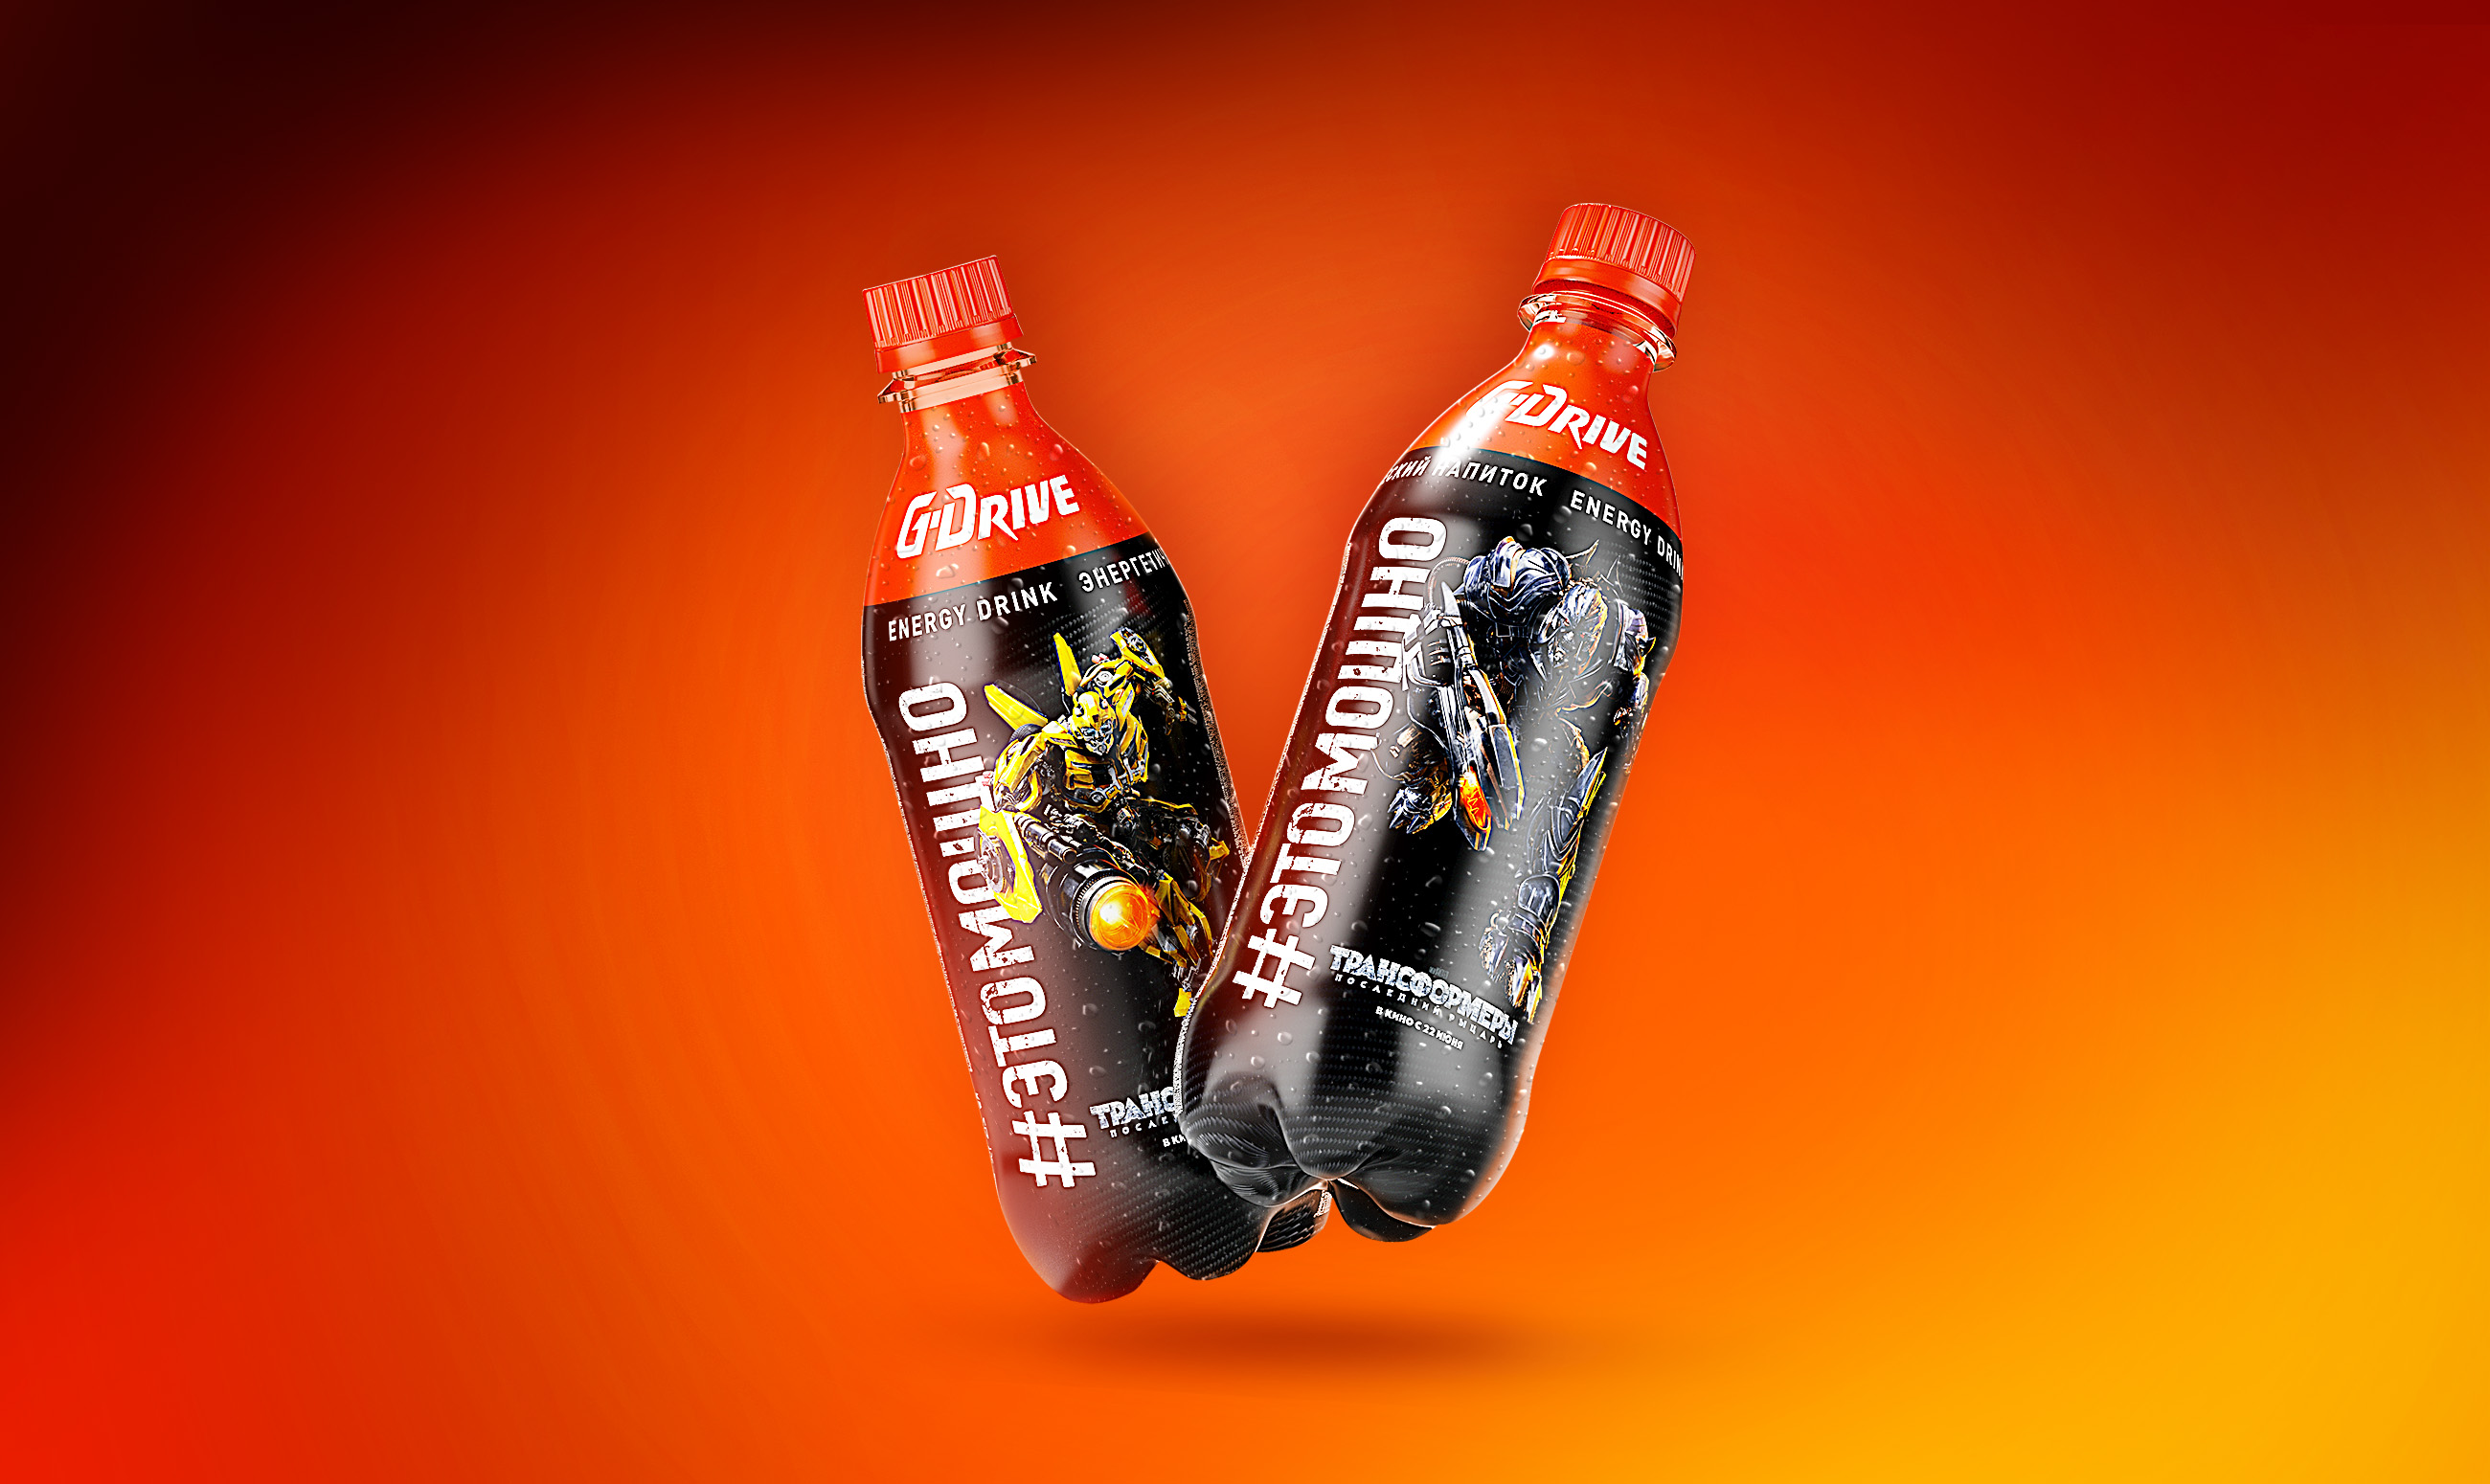 Clёver Branding Create Transformers G-Drive Energy Drink Packaging